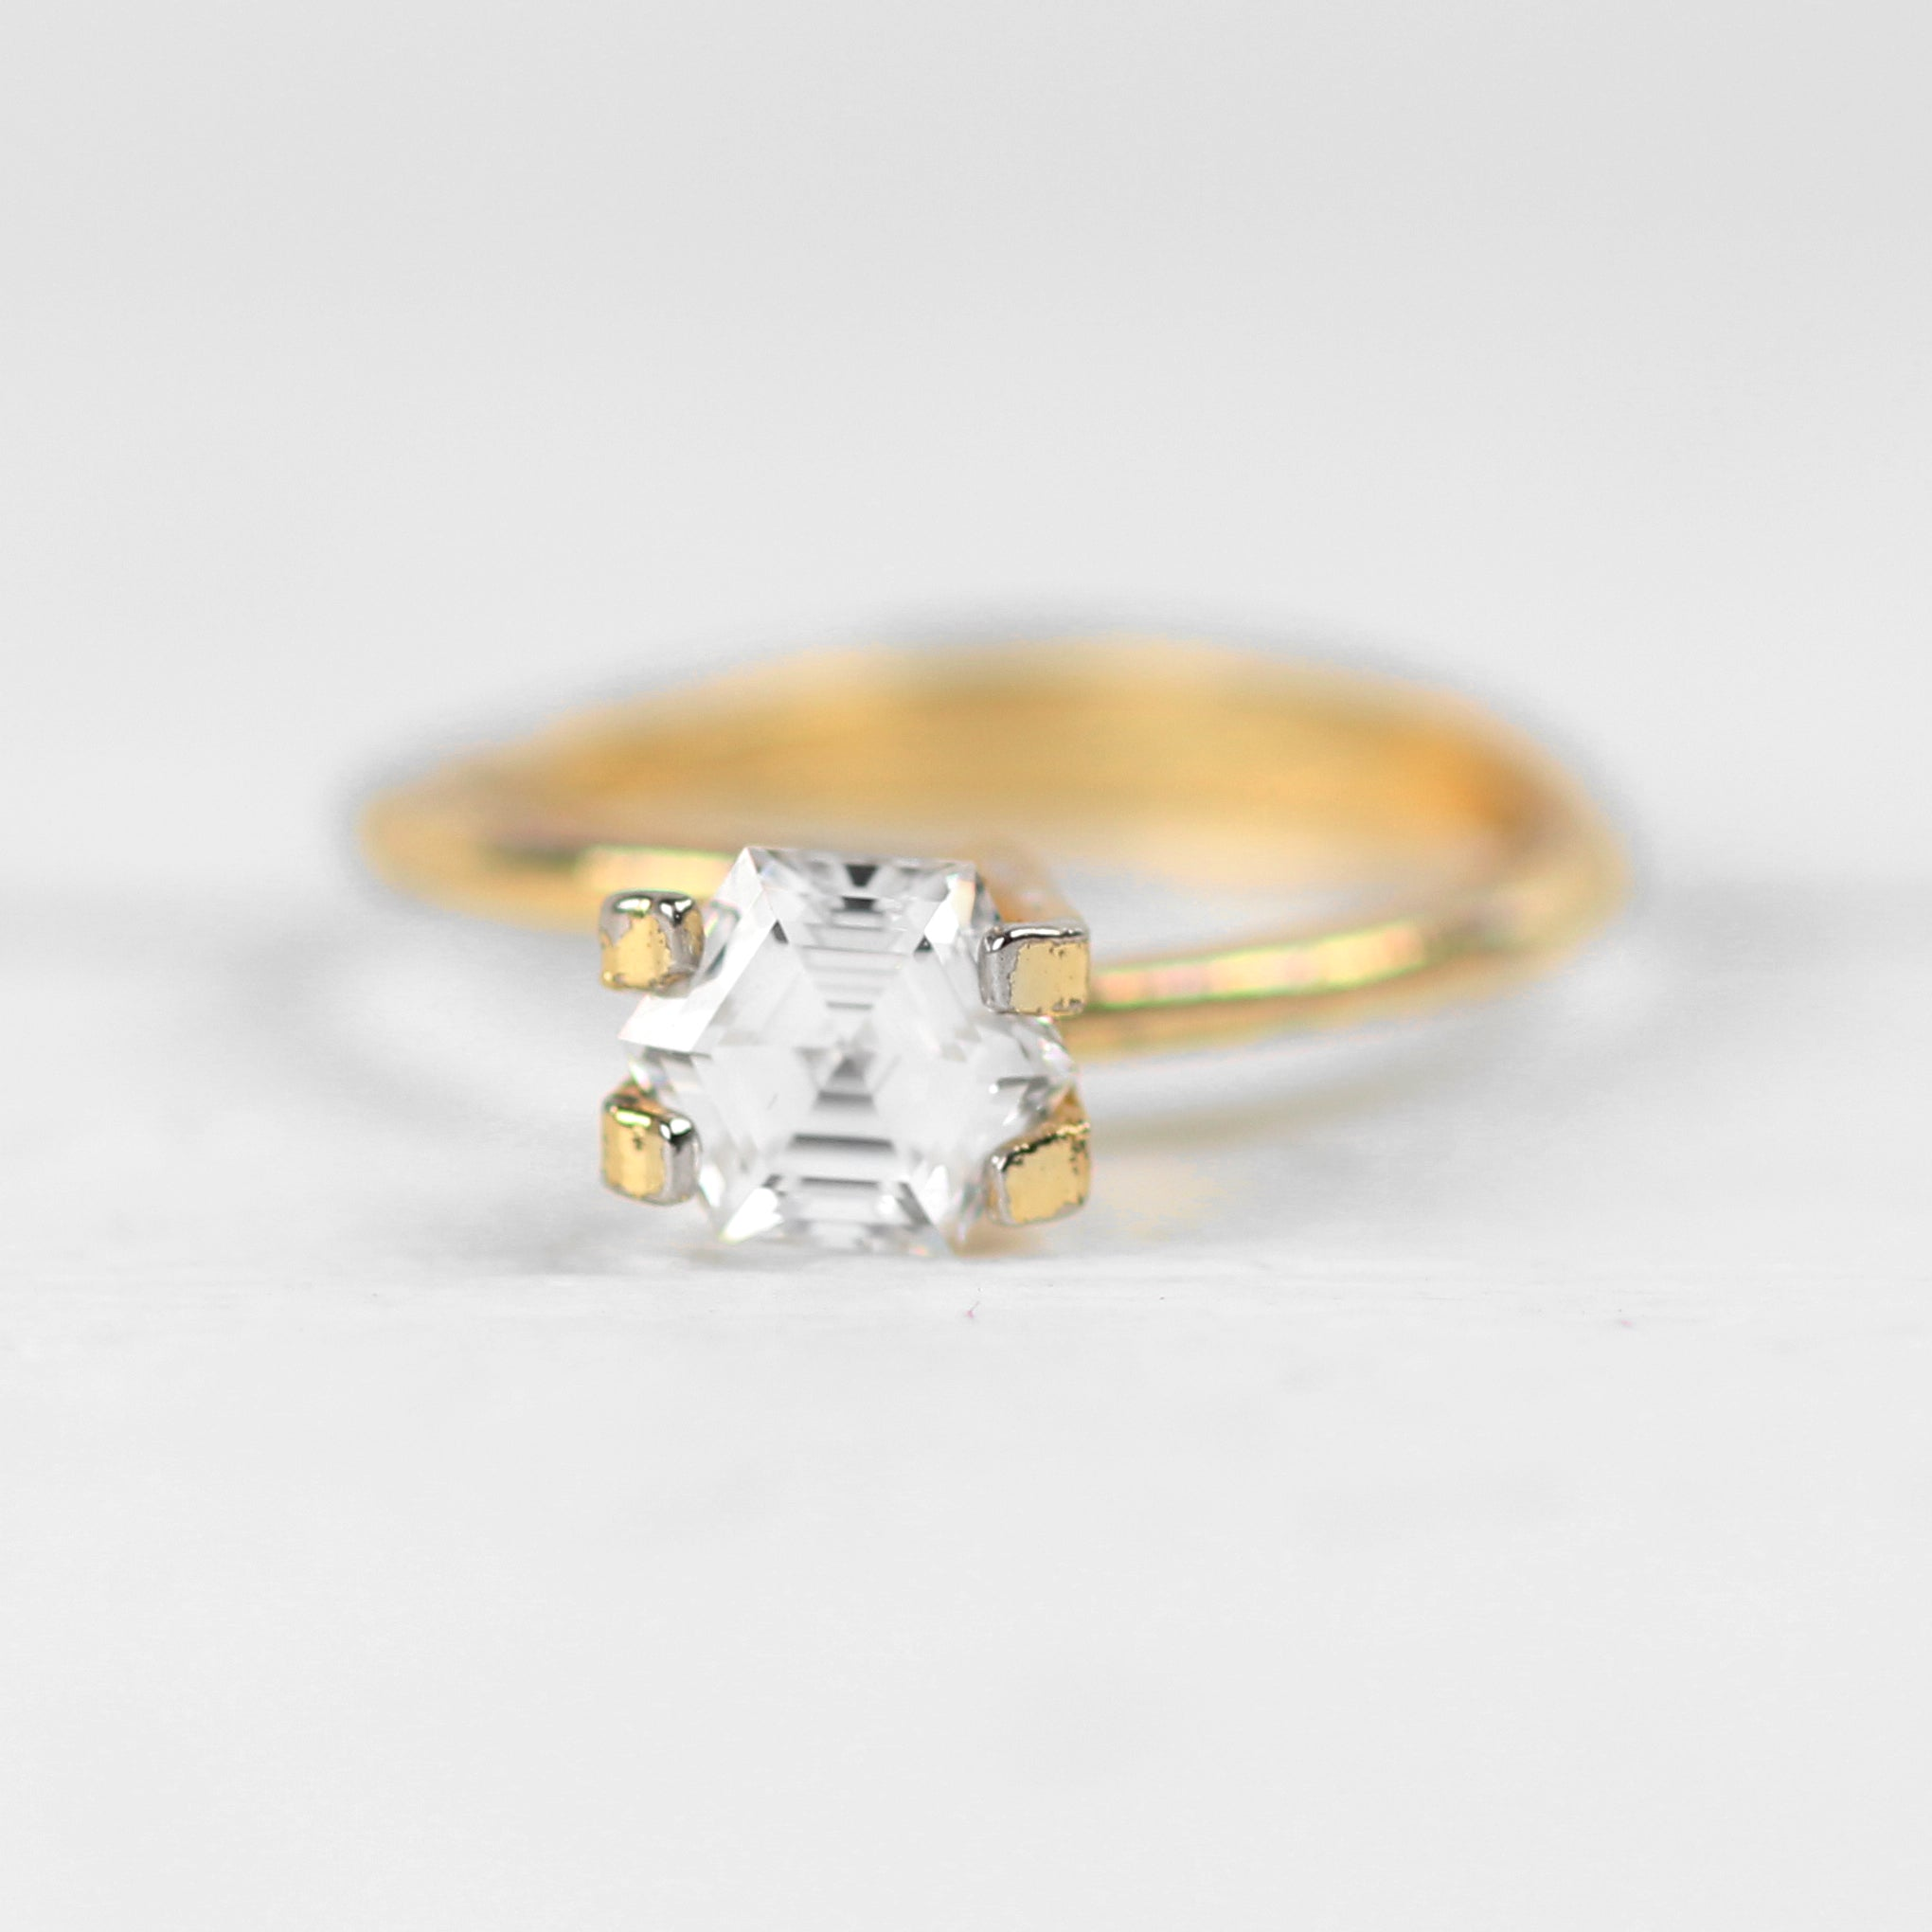 6mm Clear Hexagon Moissanite - Inventory Code MHEX1 - Midwinter Co. Alternative Bridal Rings and Modern Fine Jewelry